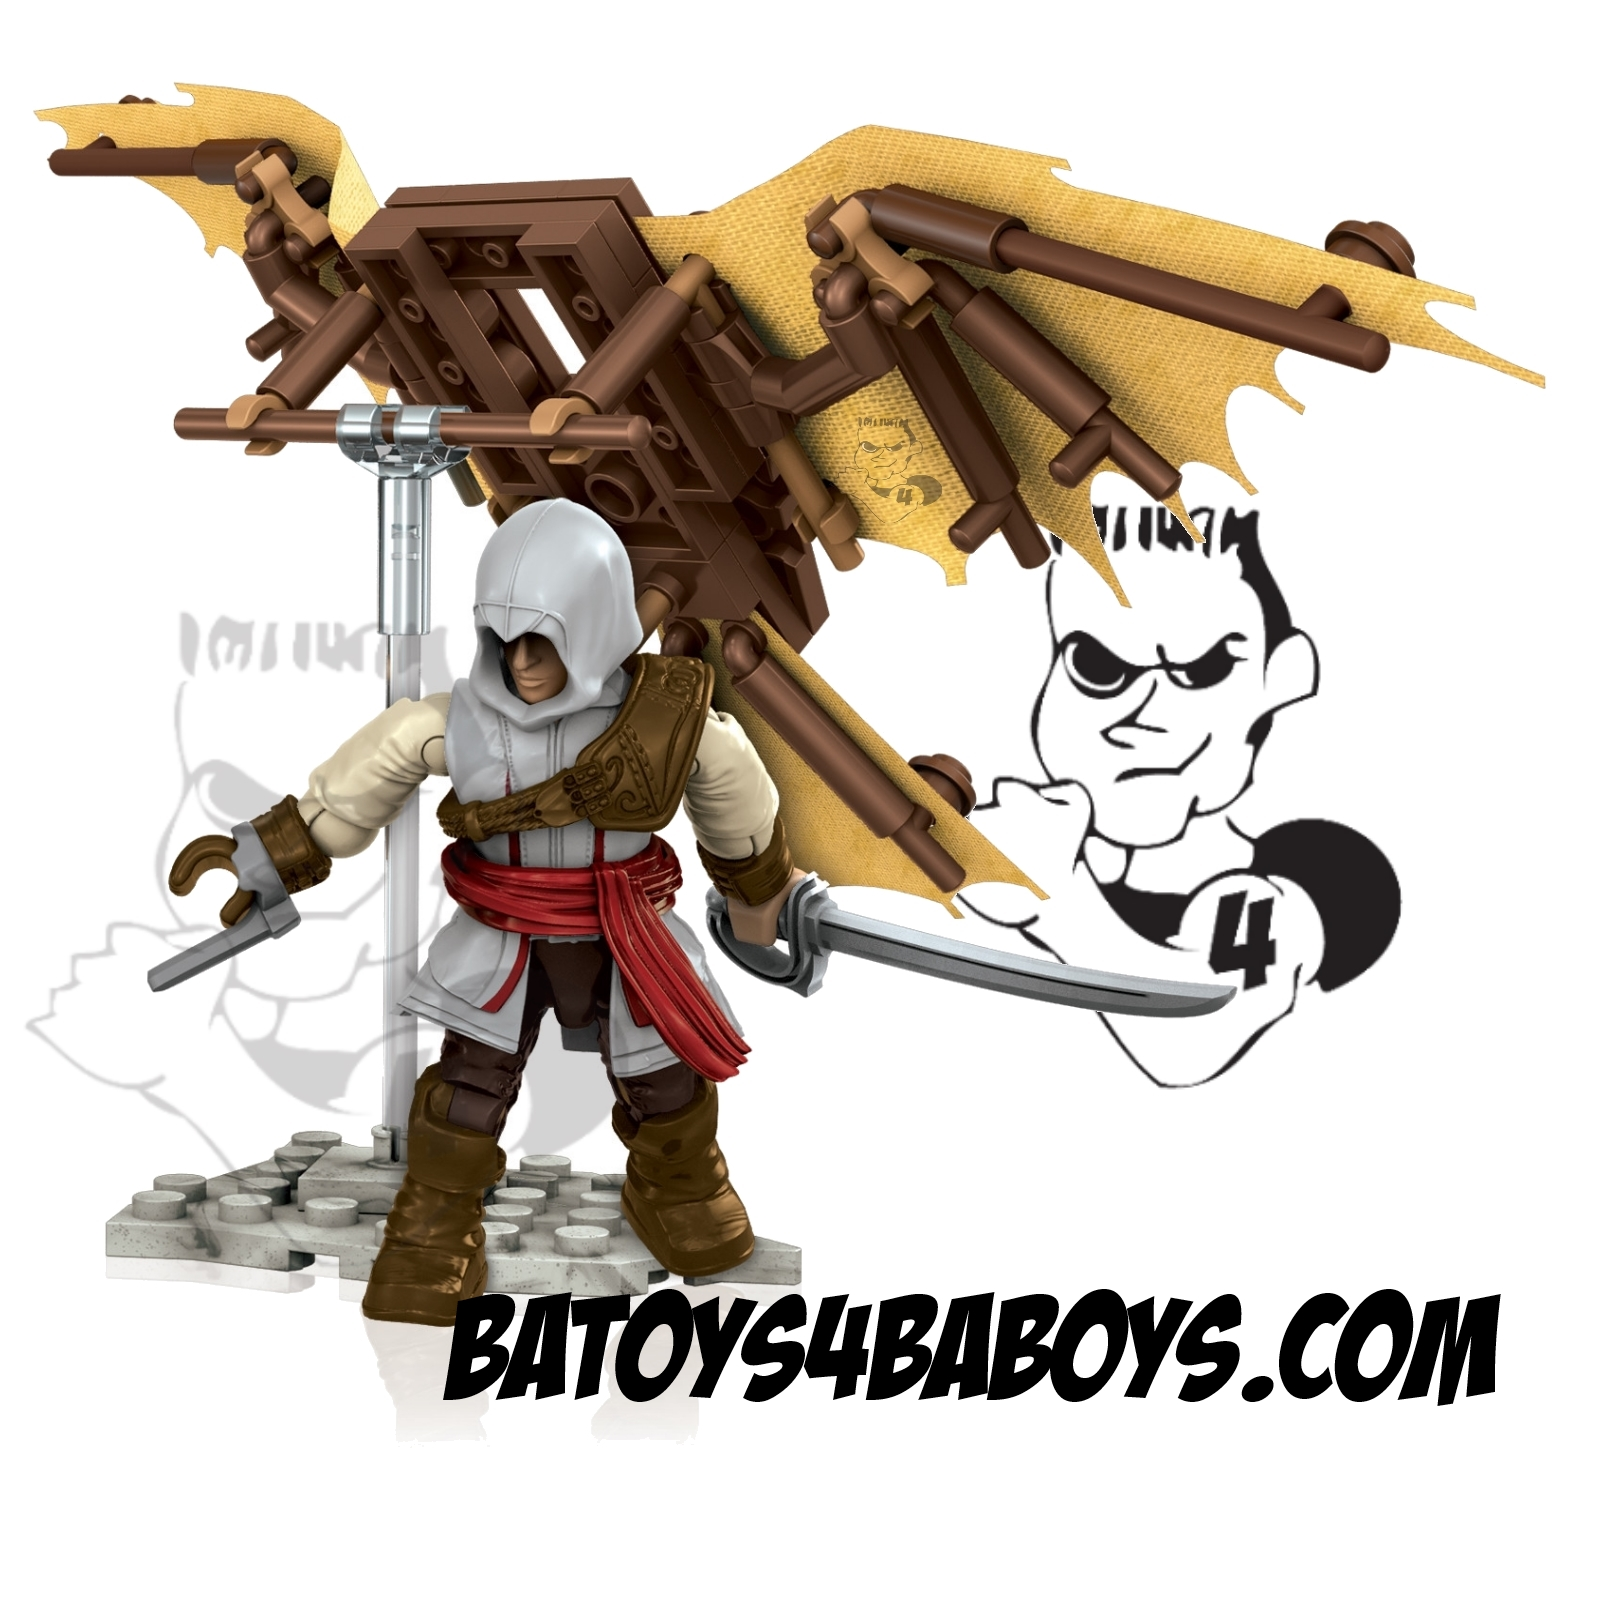 2014 Mega Bloks Assassin's Creed Da Vinci's Flying Machine officially licensed Mega Bloks Assassin's Creed product at B.A. Toys.